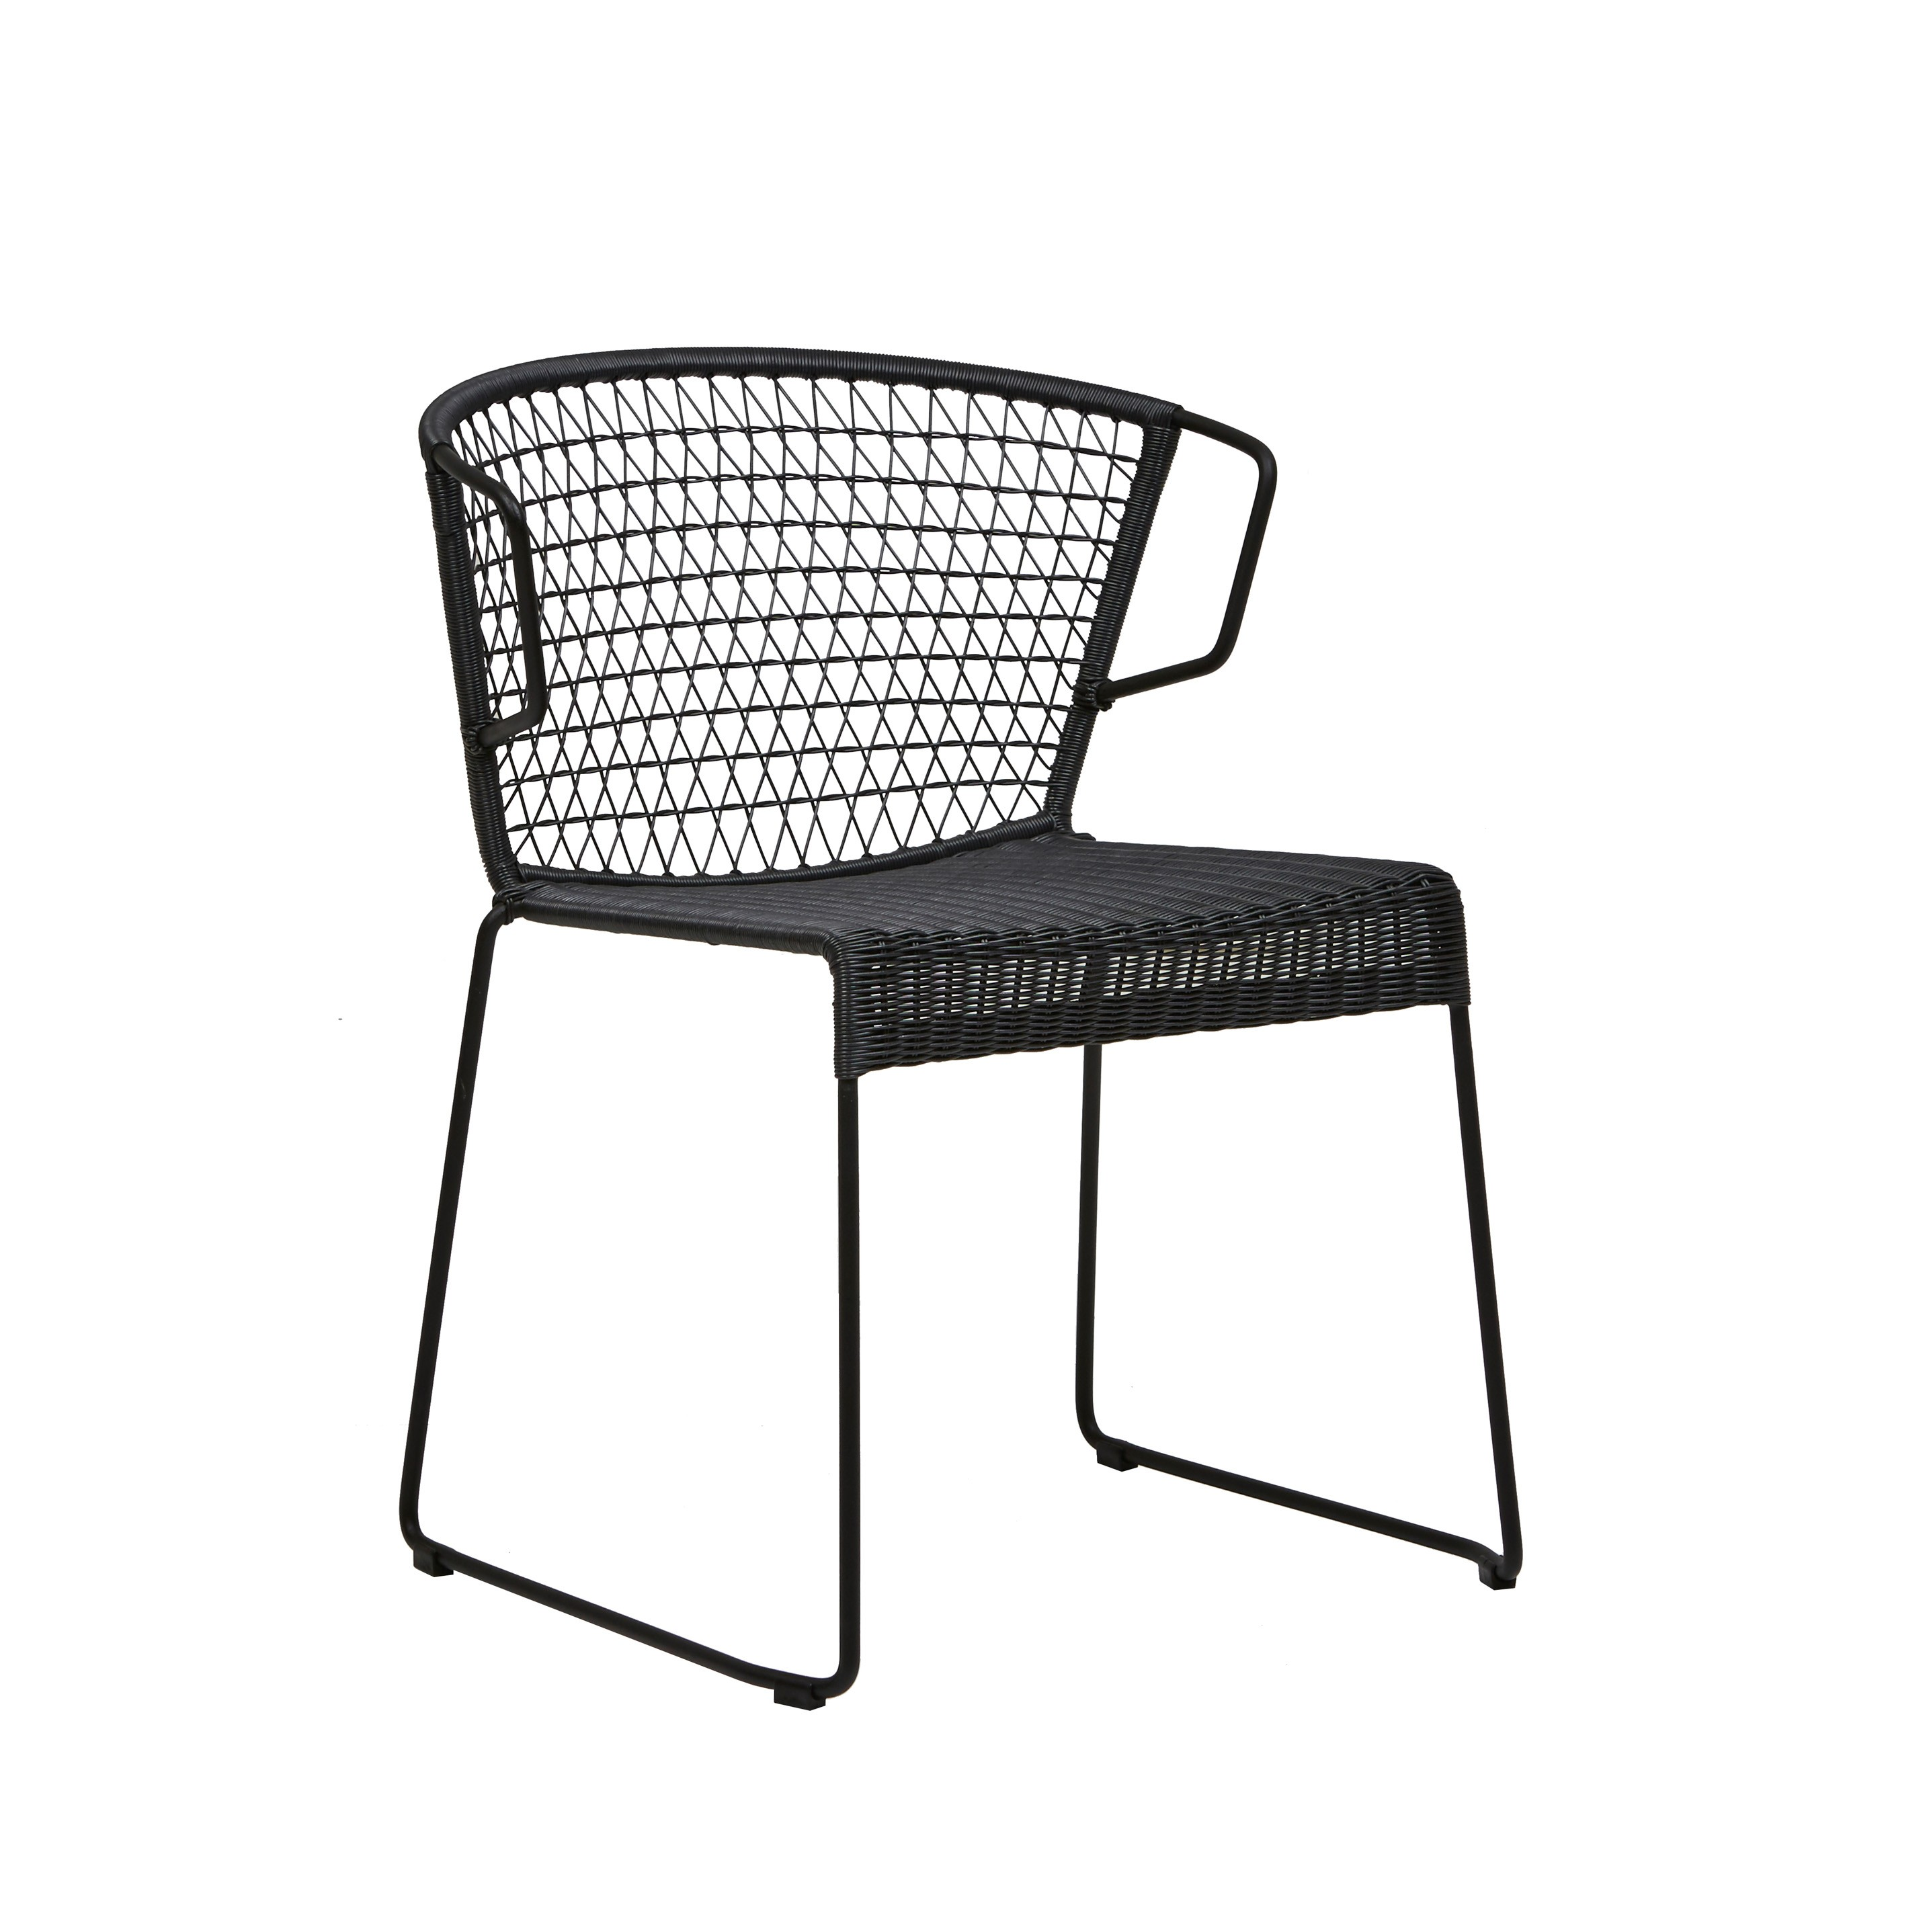 Furniture Hero-Images Dining-Chairs-Benches-and-Stools granada-rhodes-arm-03